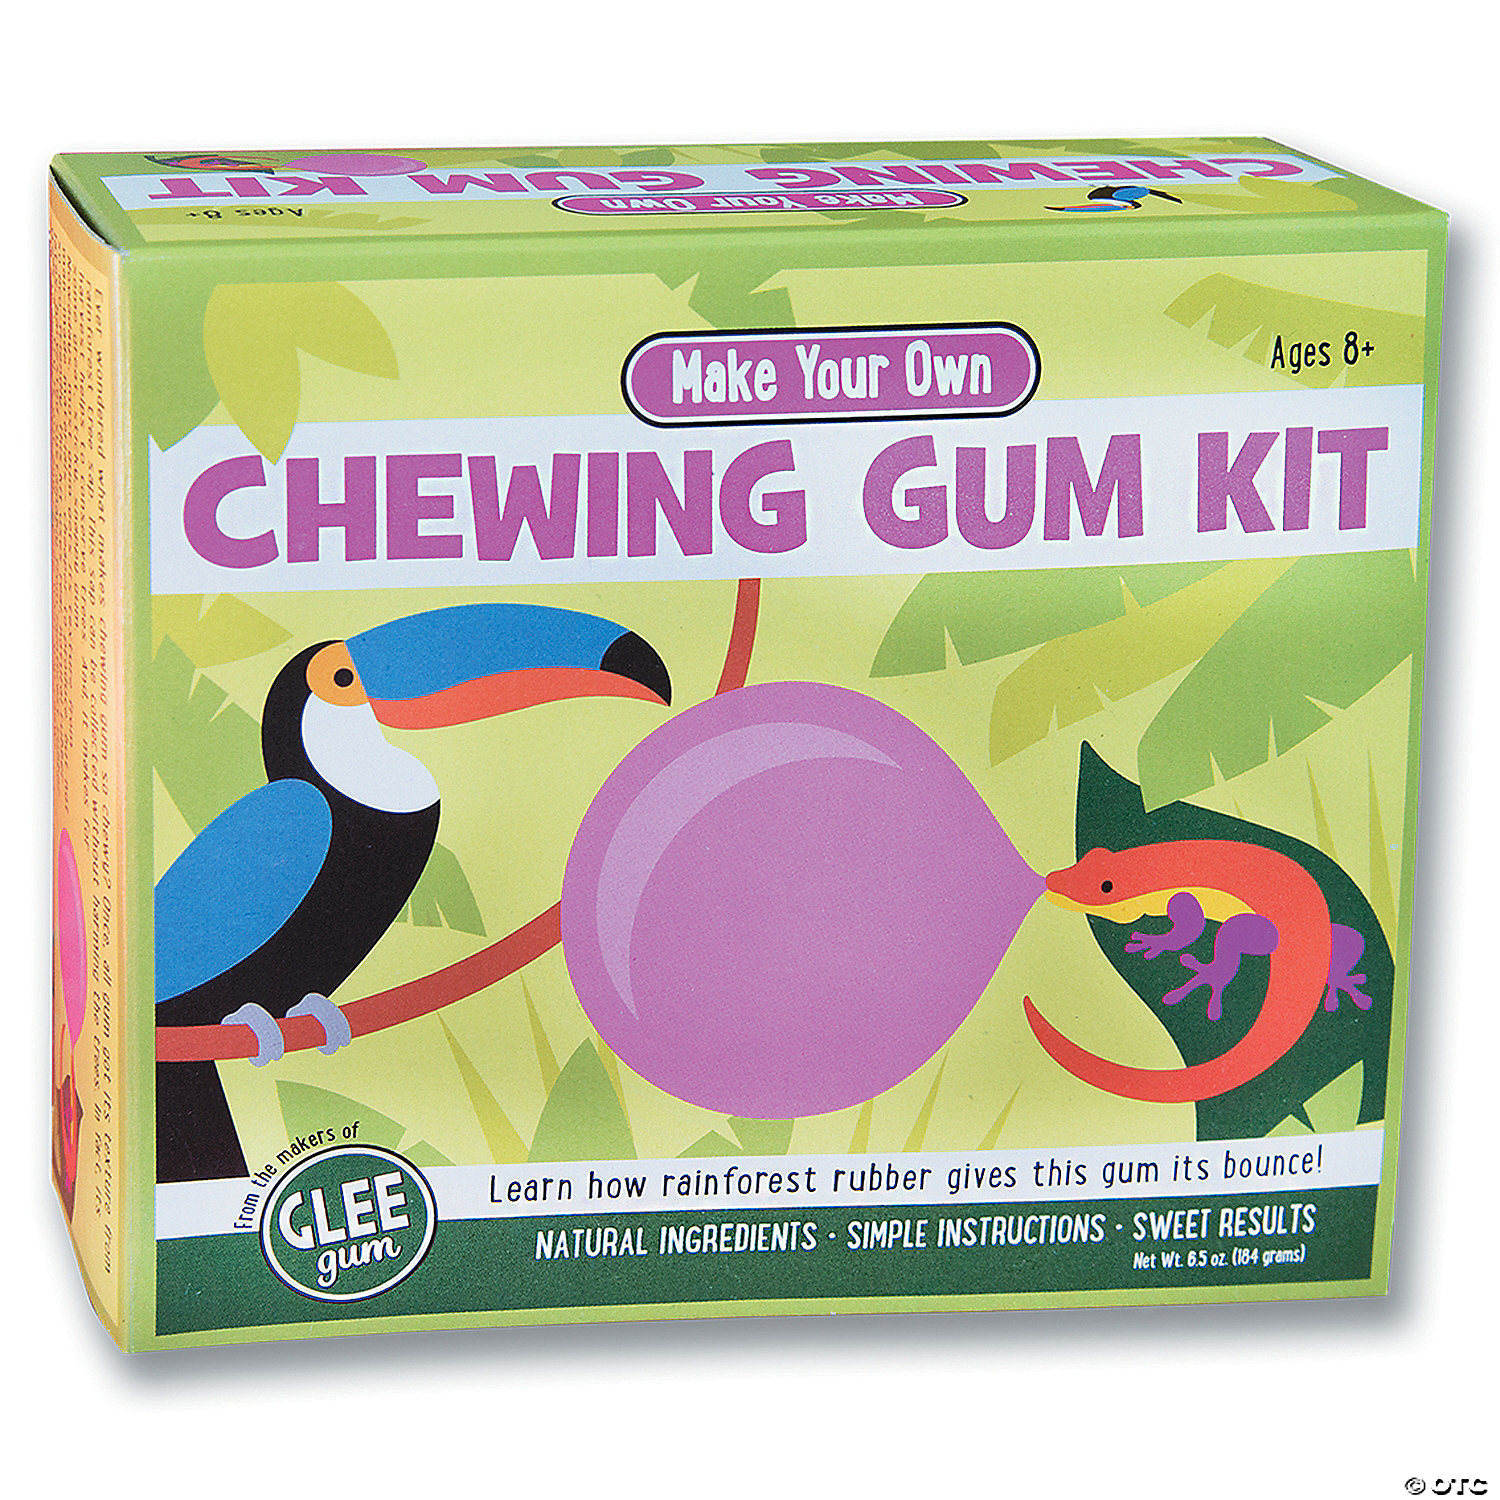 Make Your Own Chewing Gum Kit Squishy Circuits Deluxe Click To Enlarge